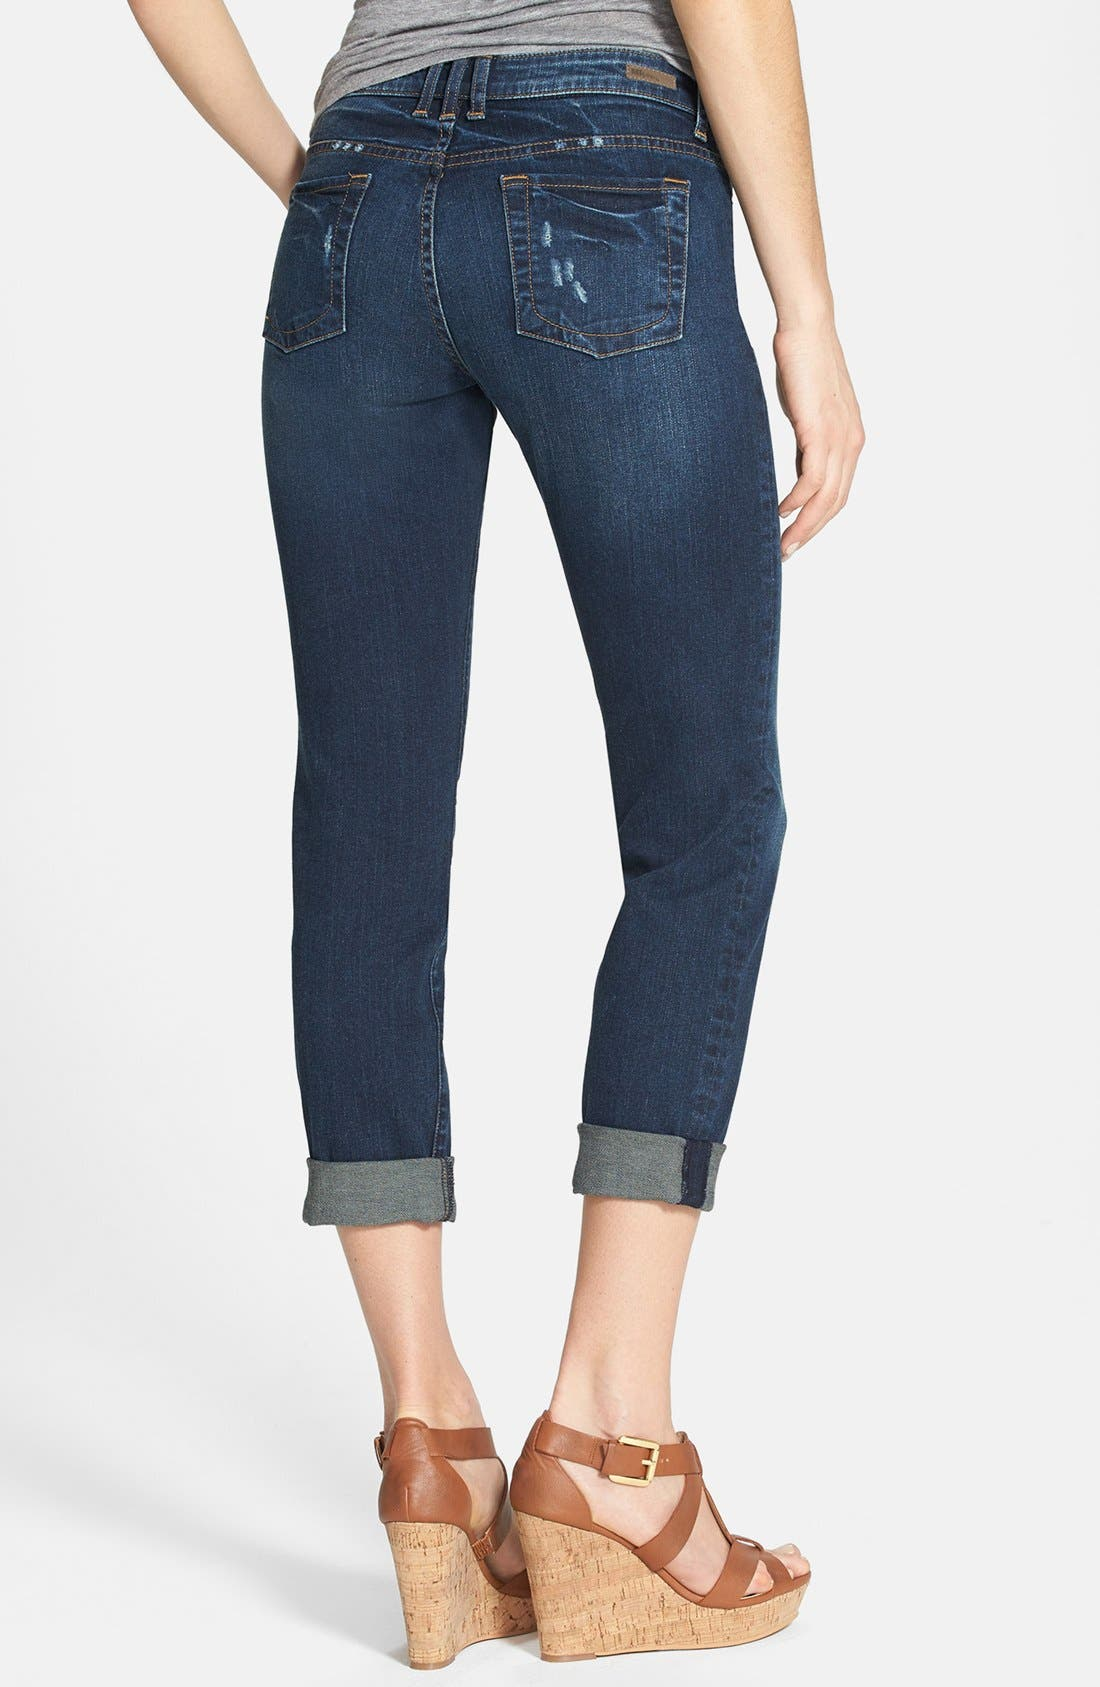 Alternate Image 2  - KUT from the Kloth 'Catherine' Boyfriend Jeans (Magnify) (Regular & Petite)